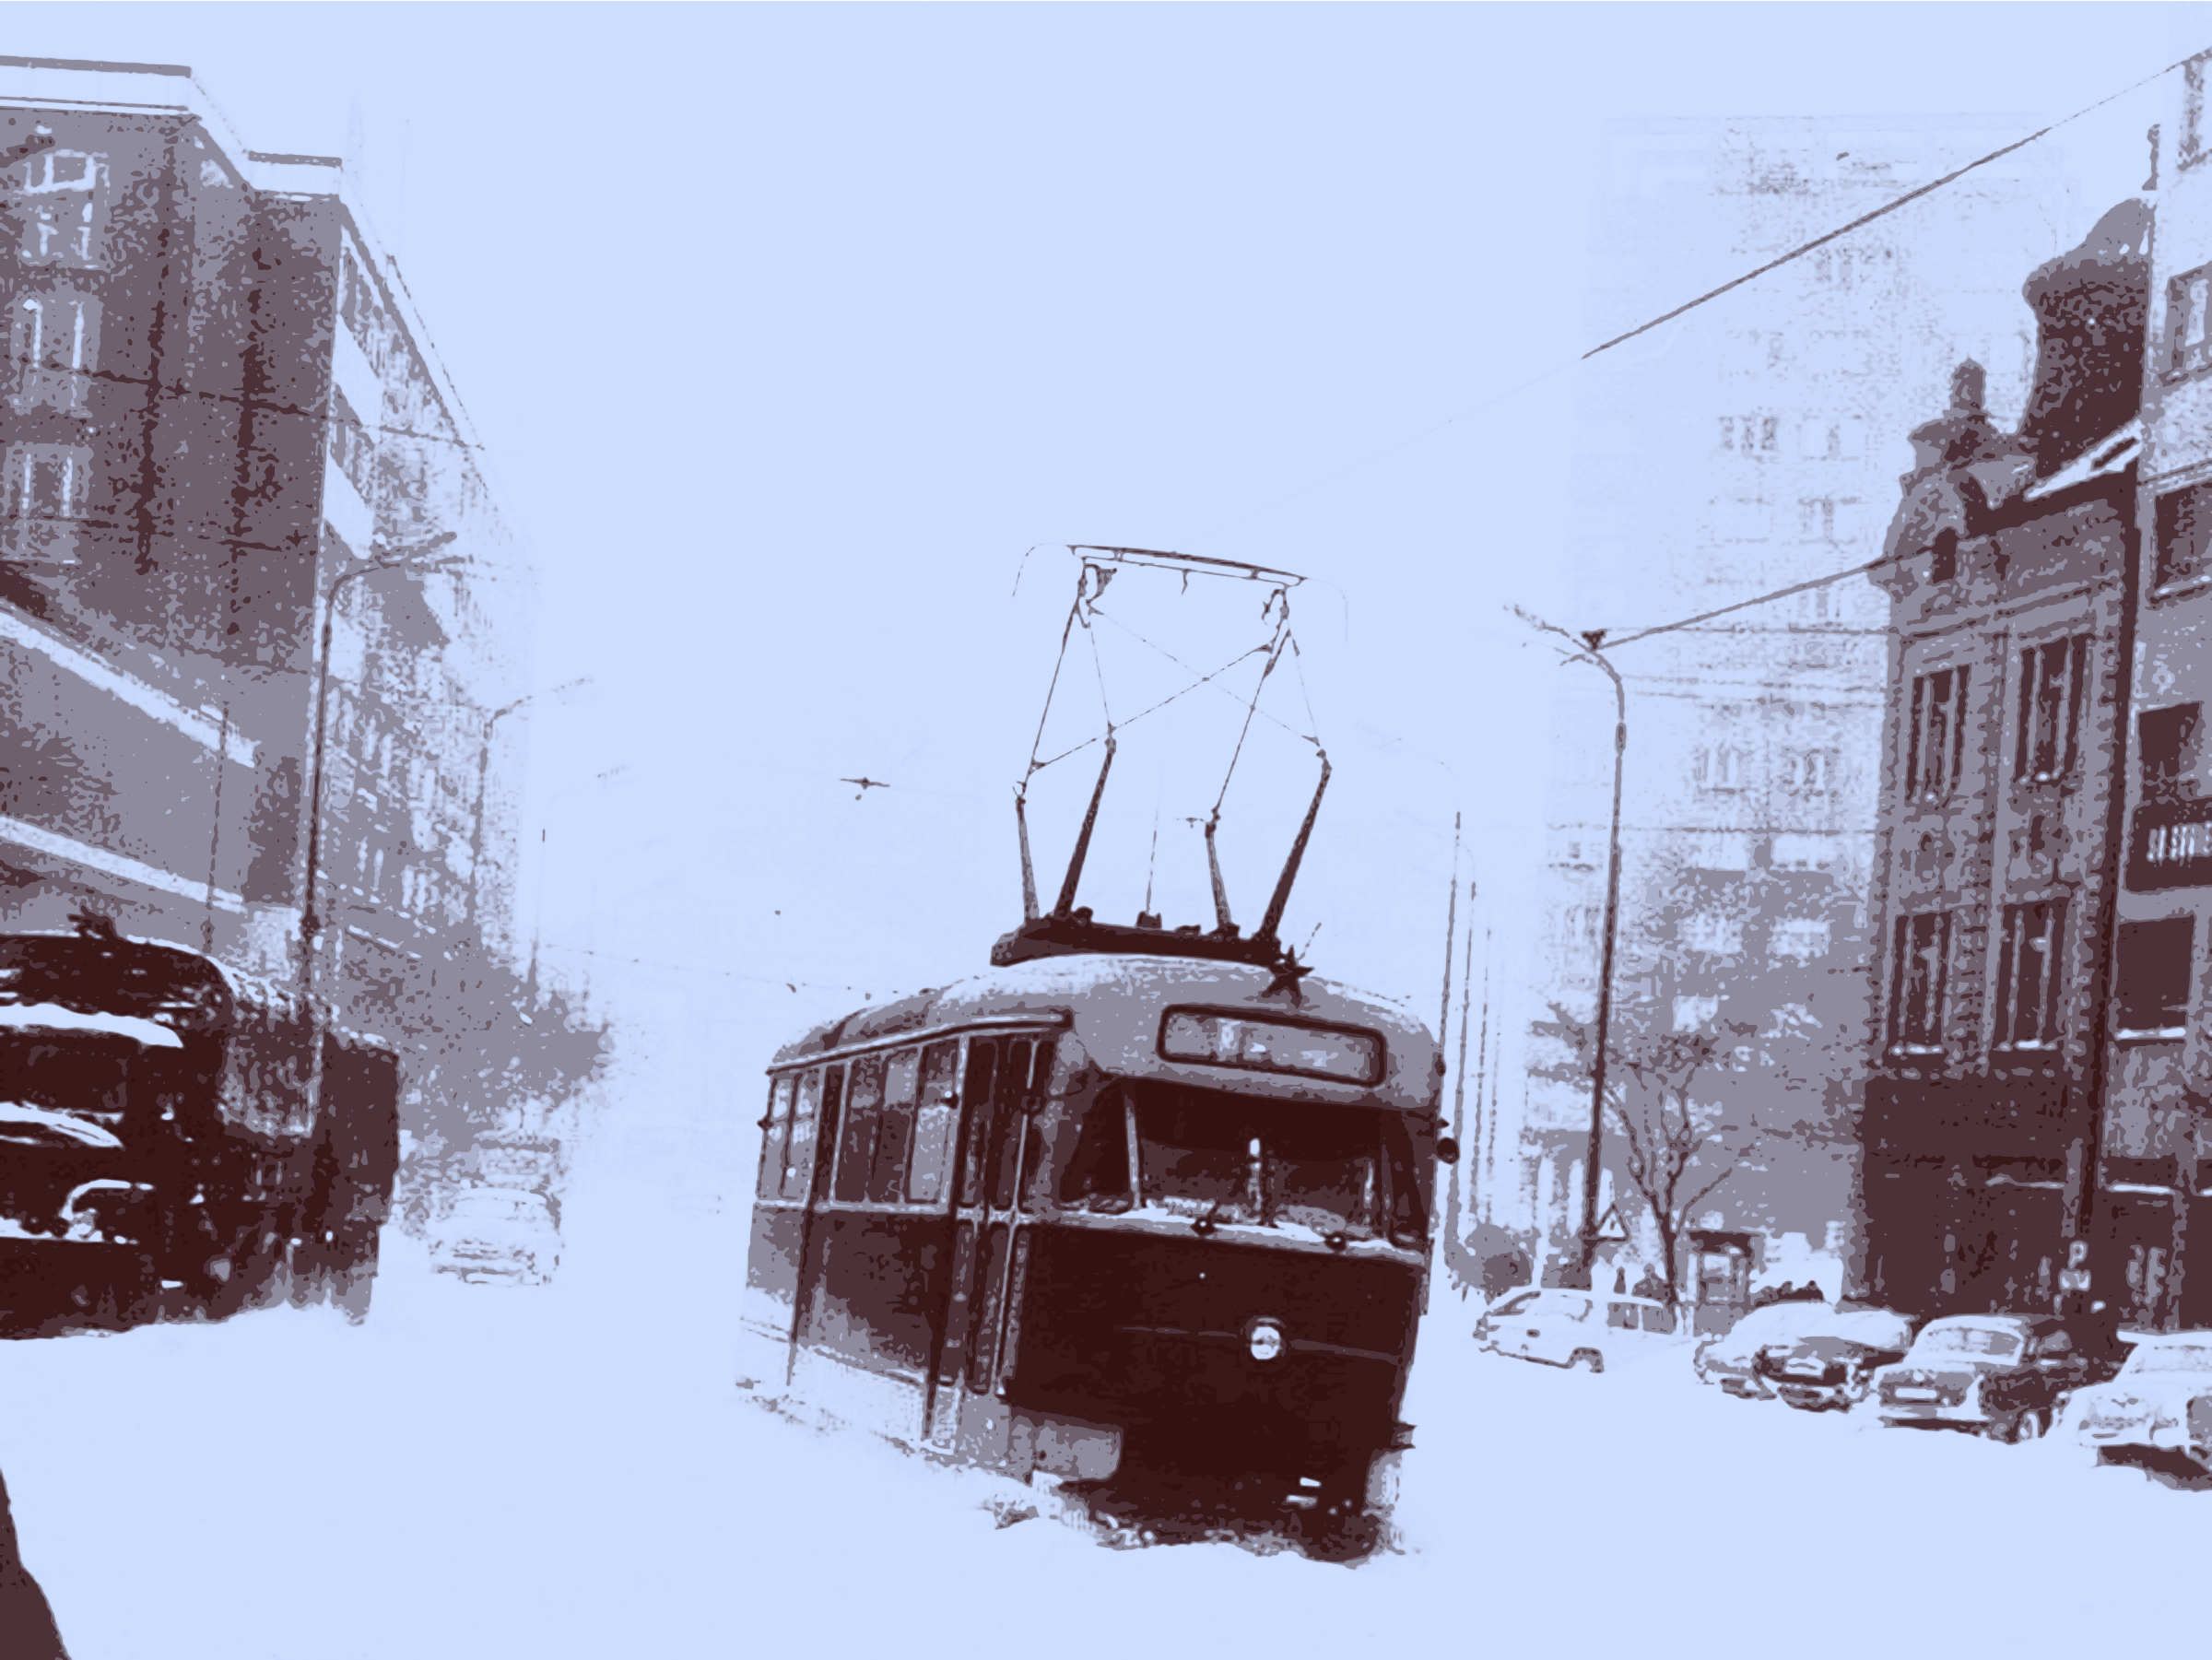 Street Car in the Snow by AdamStanislav